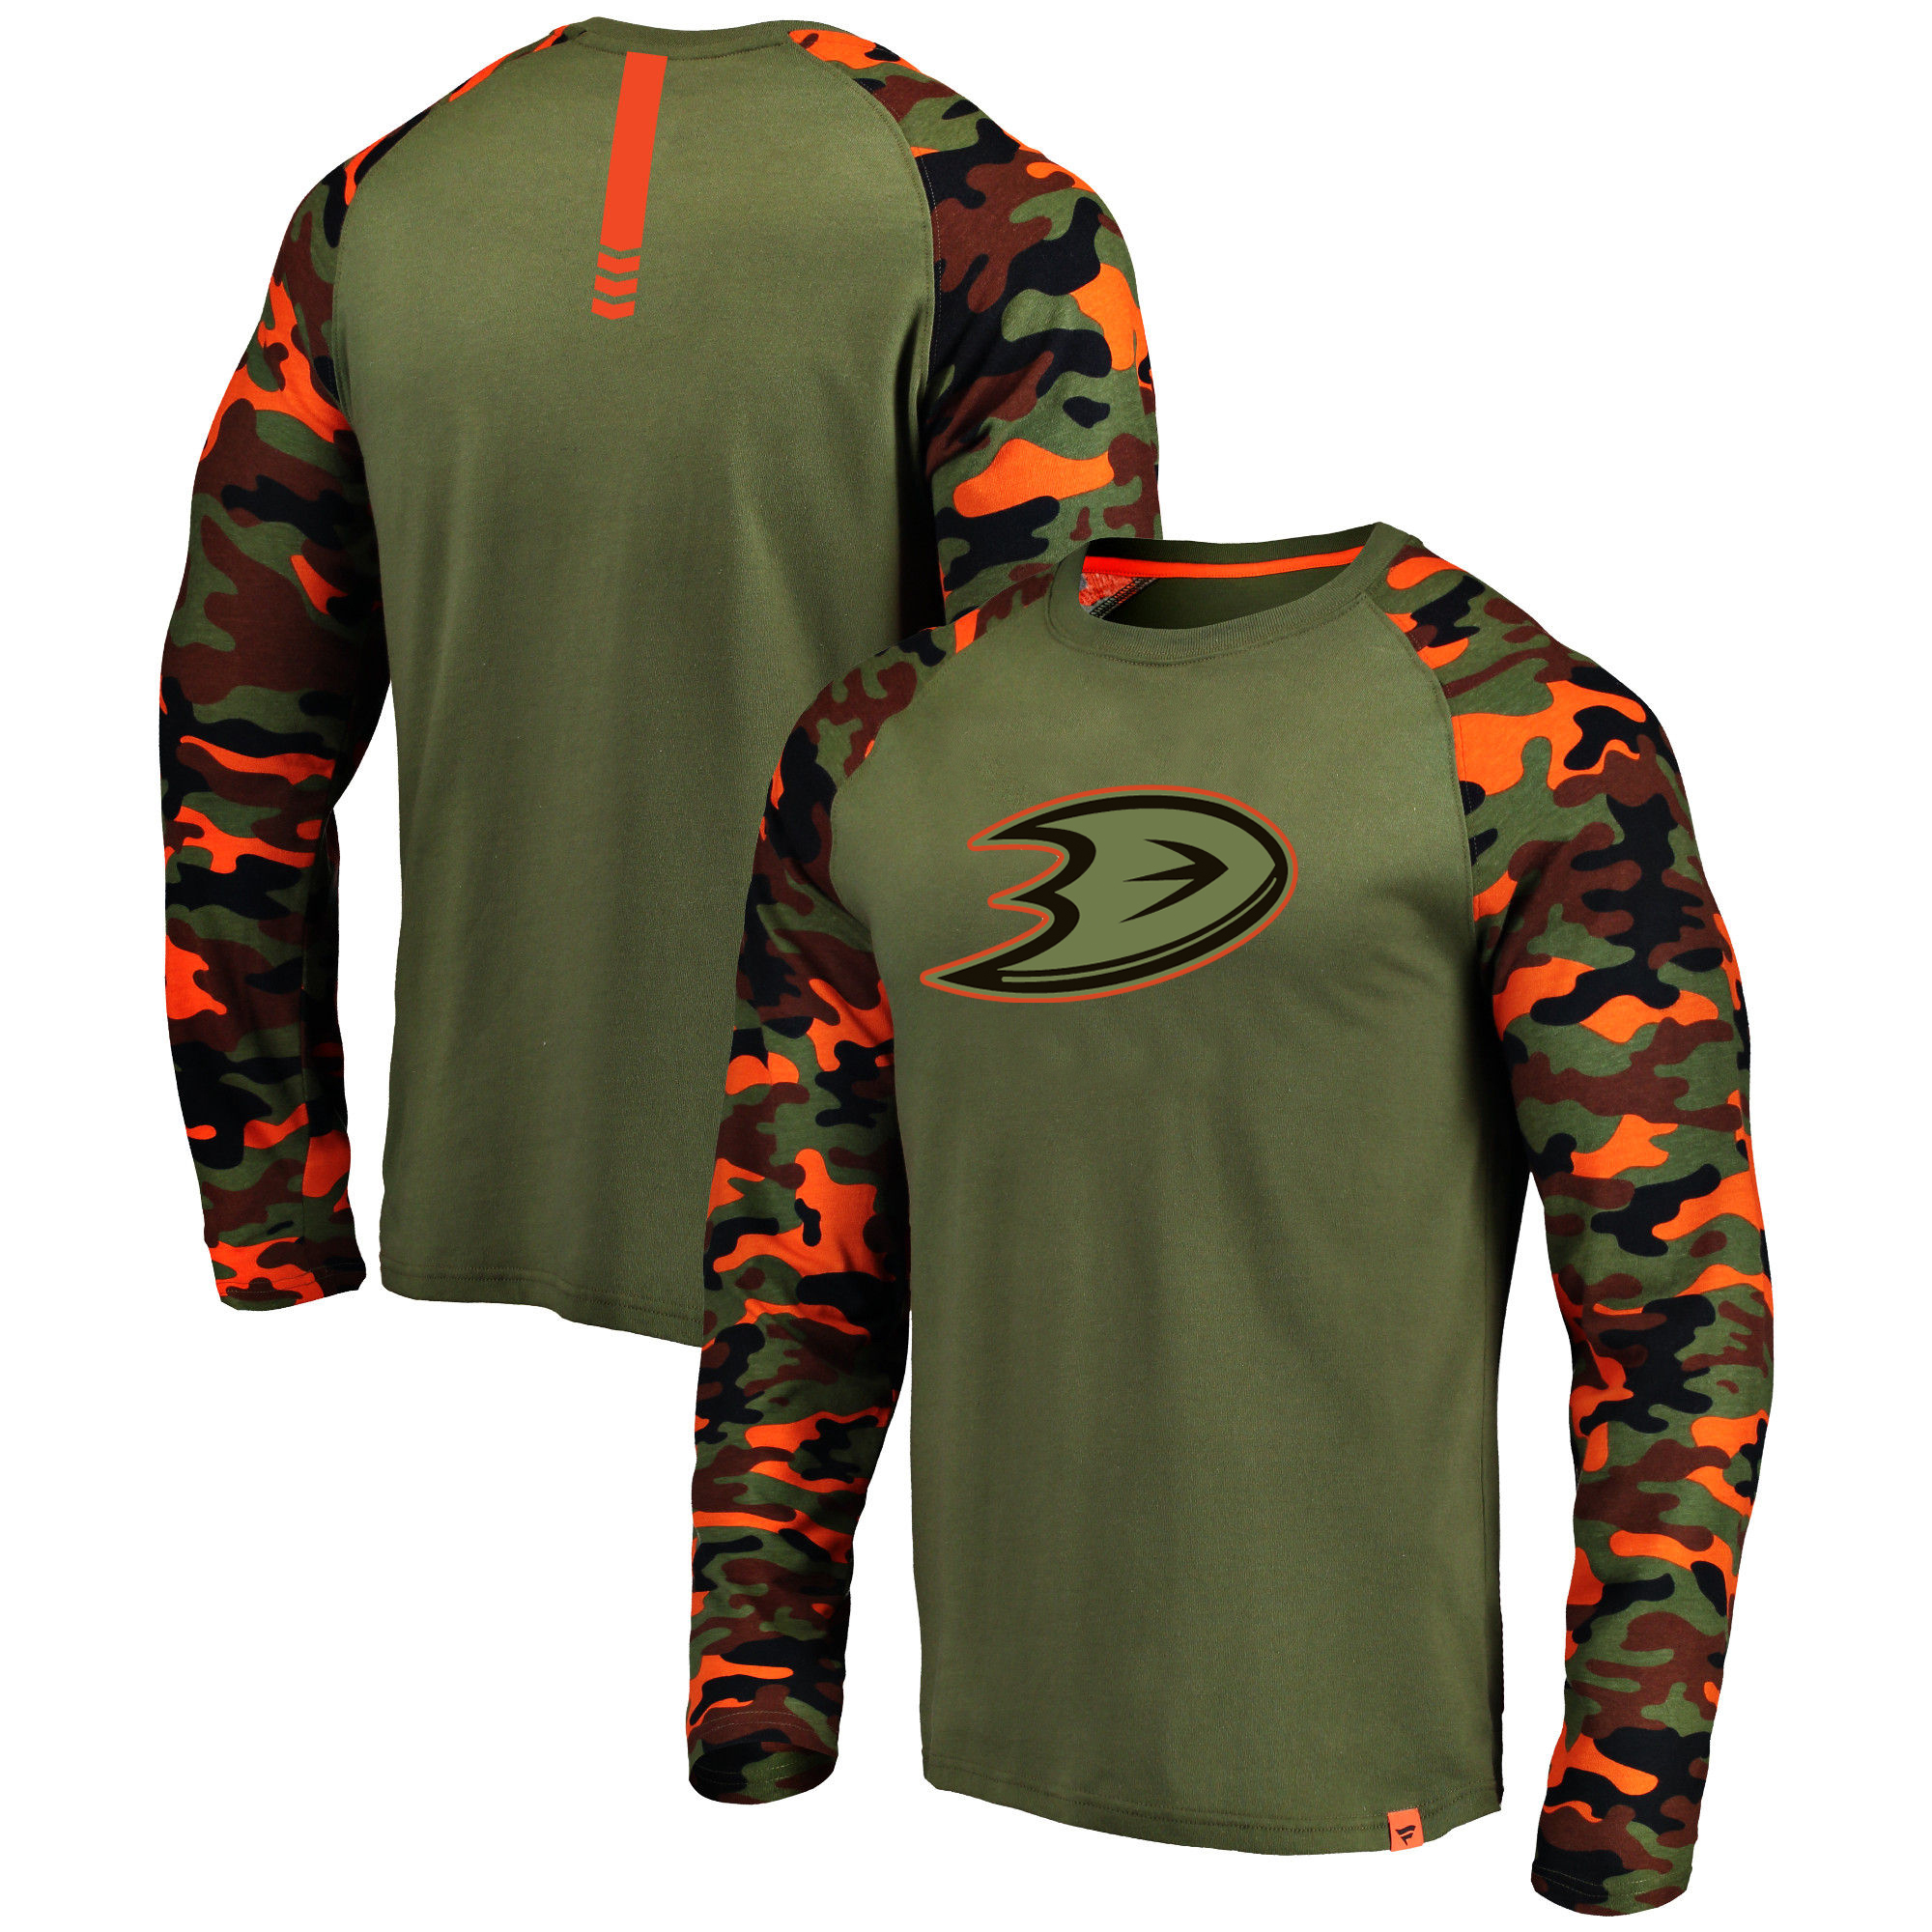 Anaheim Ducks Fanatics Branded Olive/Camo Recon Long Sleeve Raglan T-Shirt